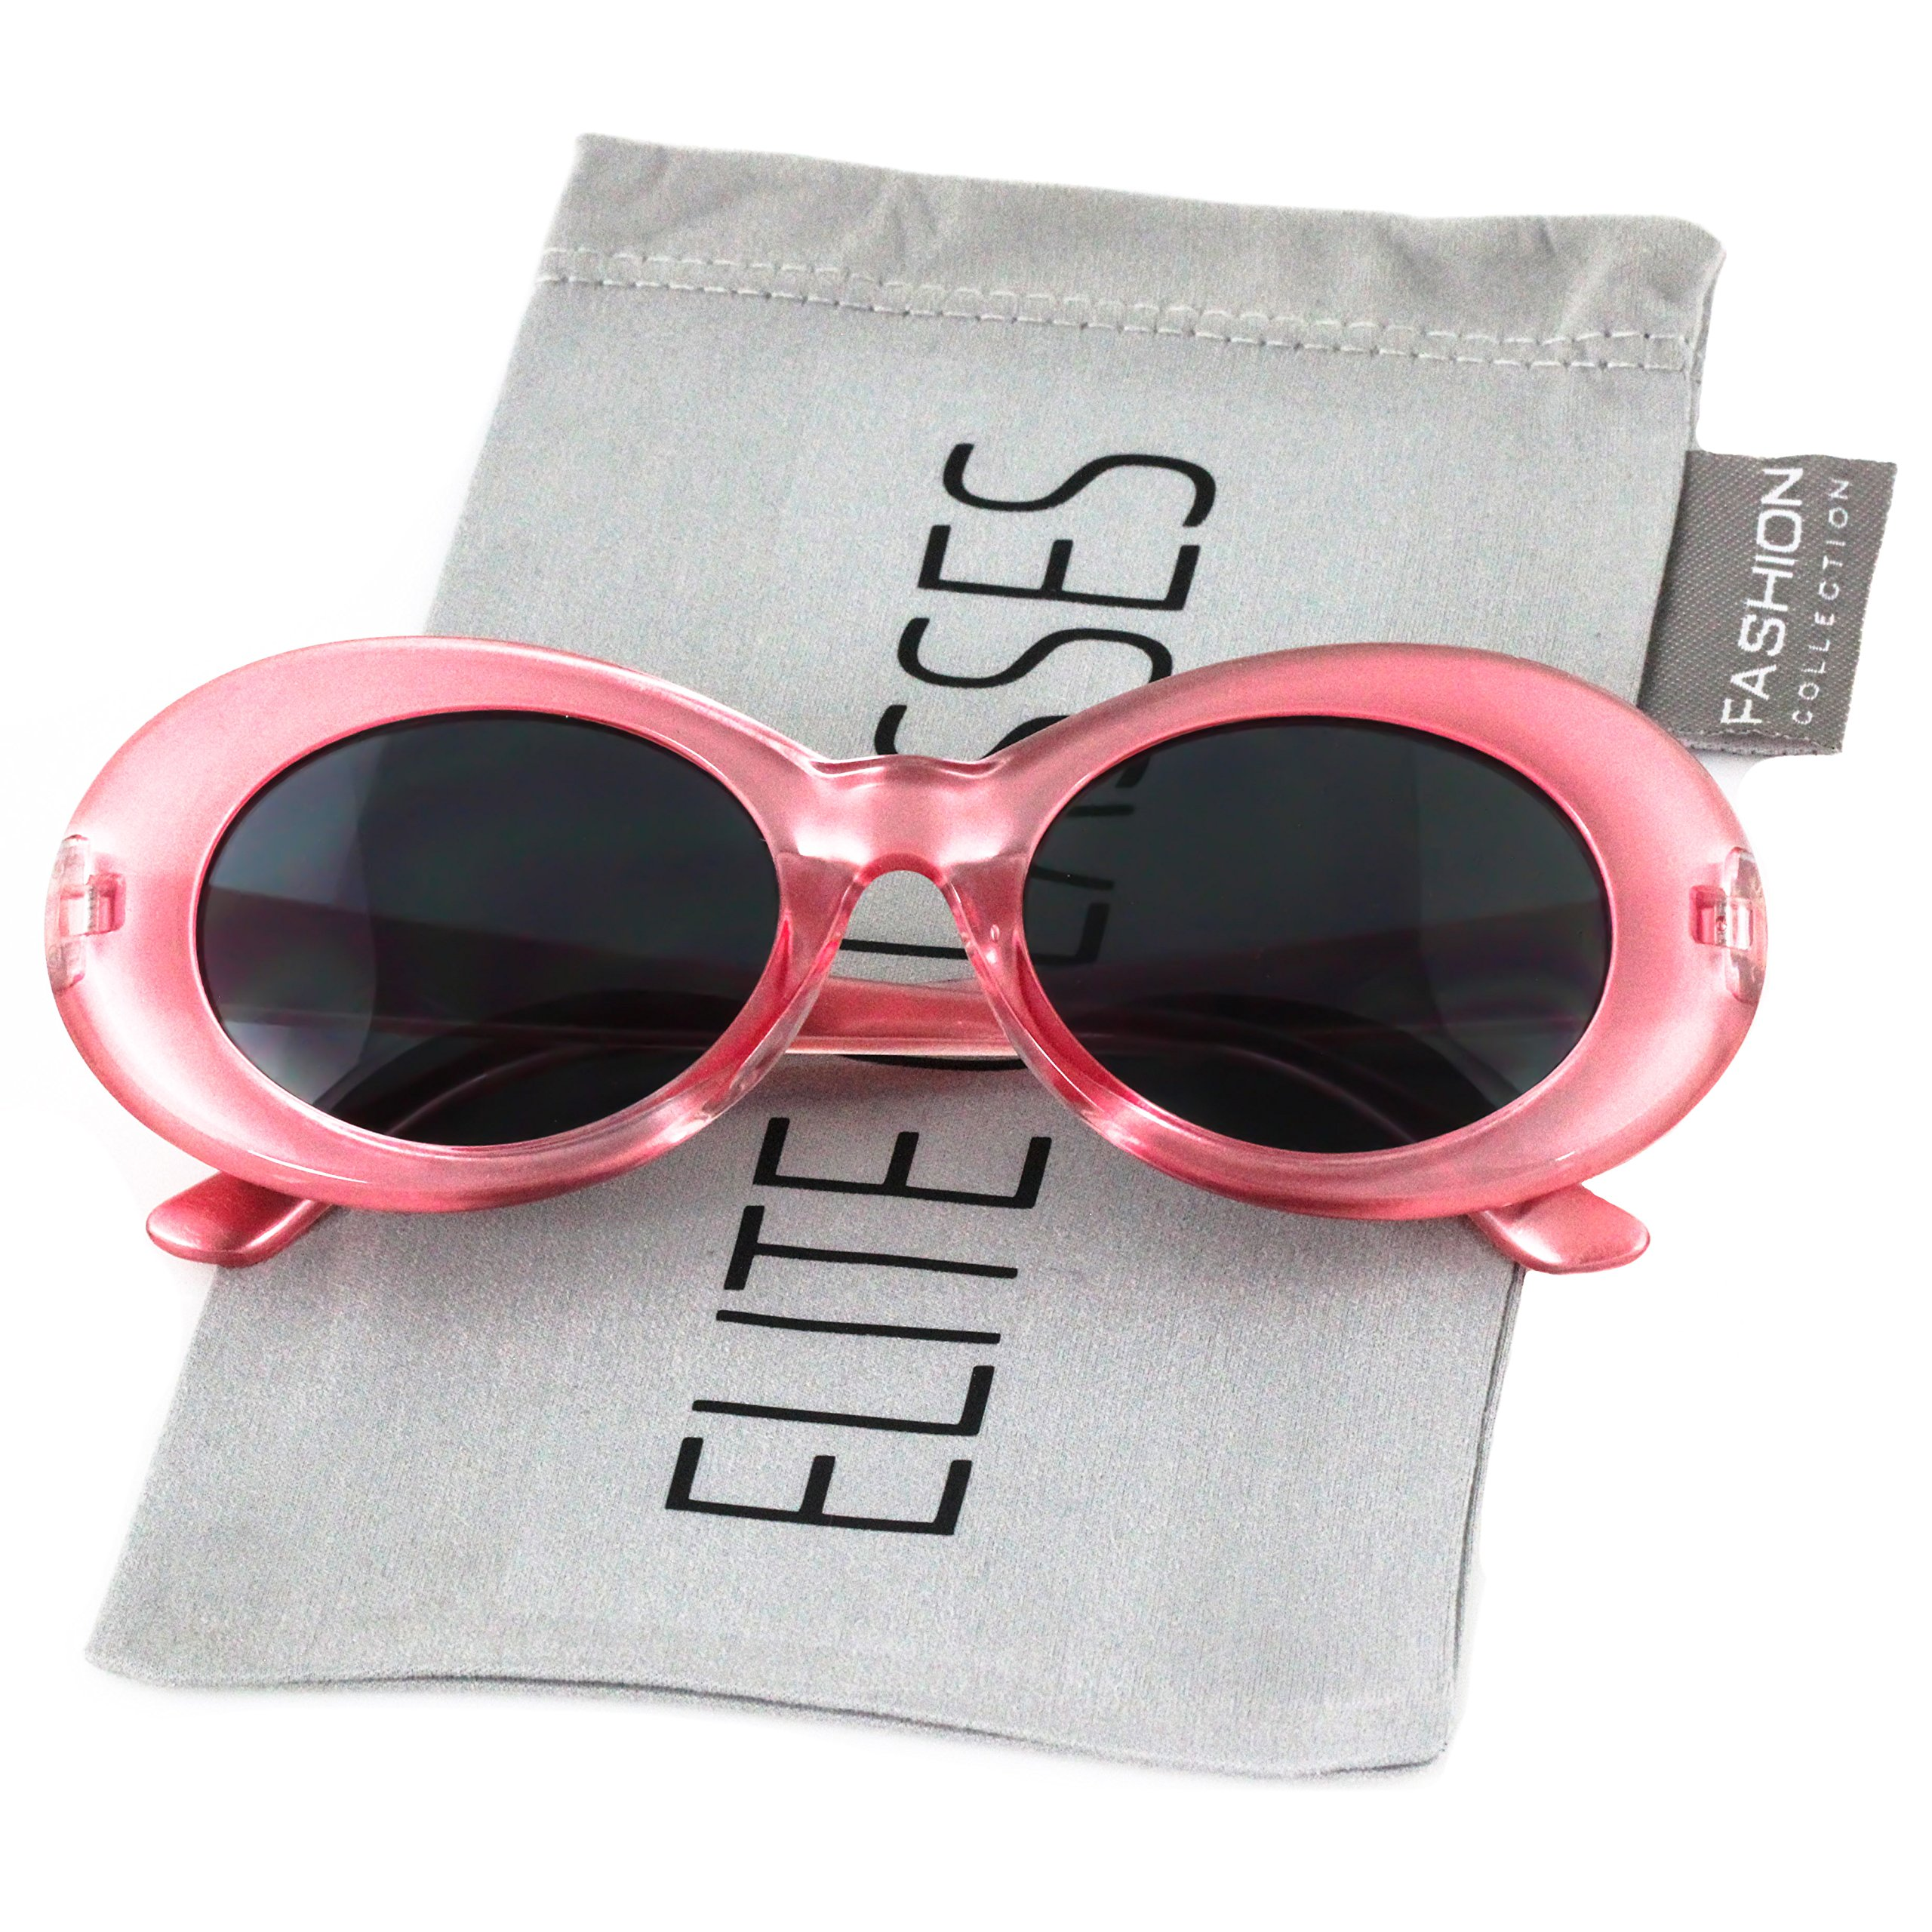 fde44005d3 Galleon - Clout Goggles Oval Hypebeast Eyewear Supreme Glasses Cool  Sunglasses (Transparent Pink